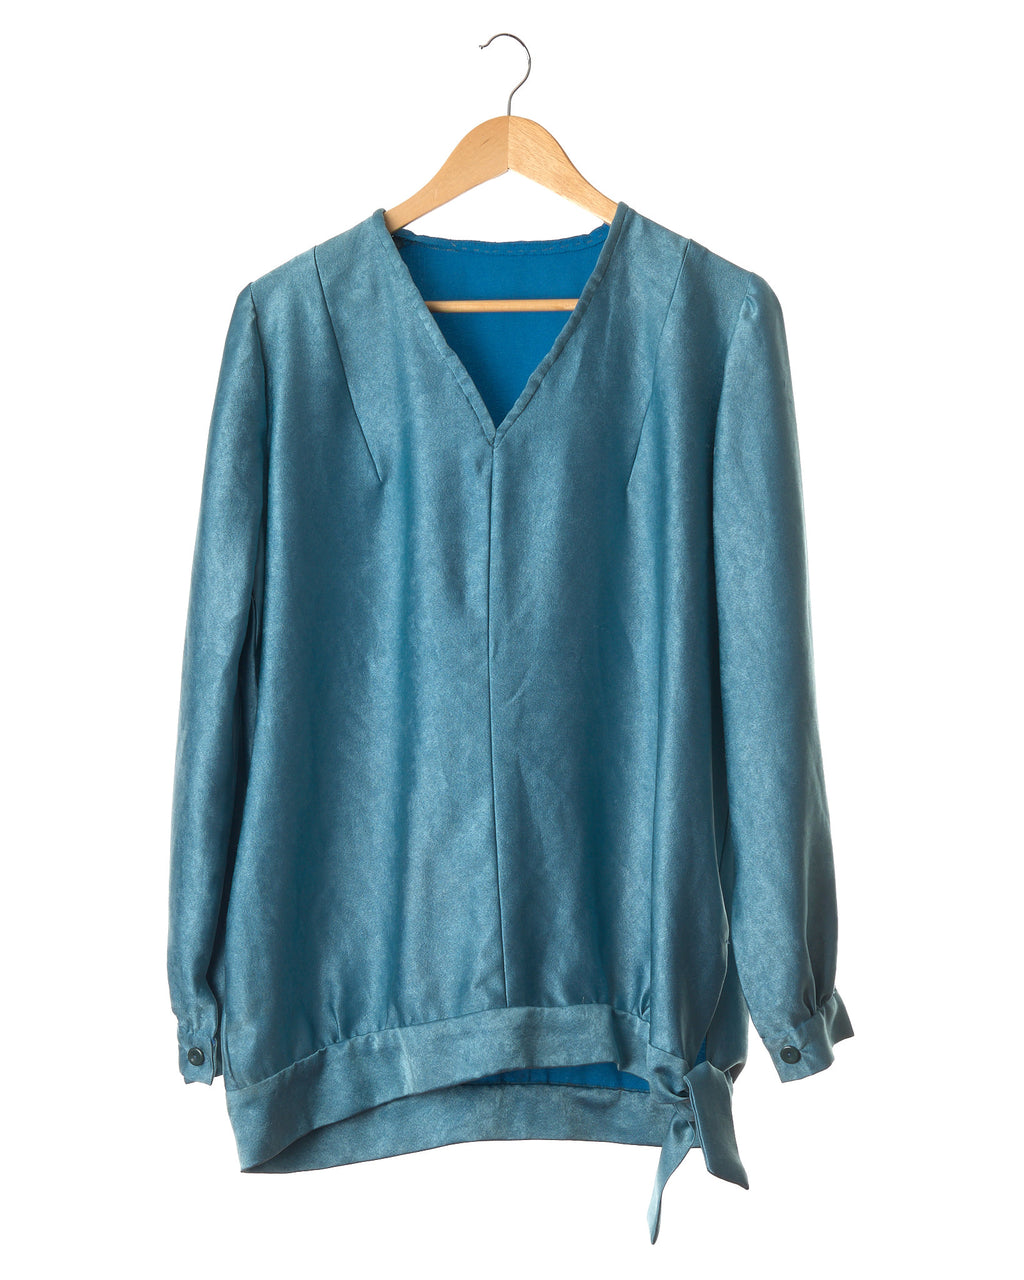 Teal Shine Vintage Tie Top